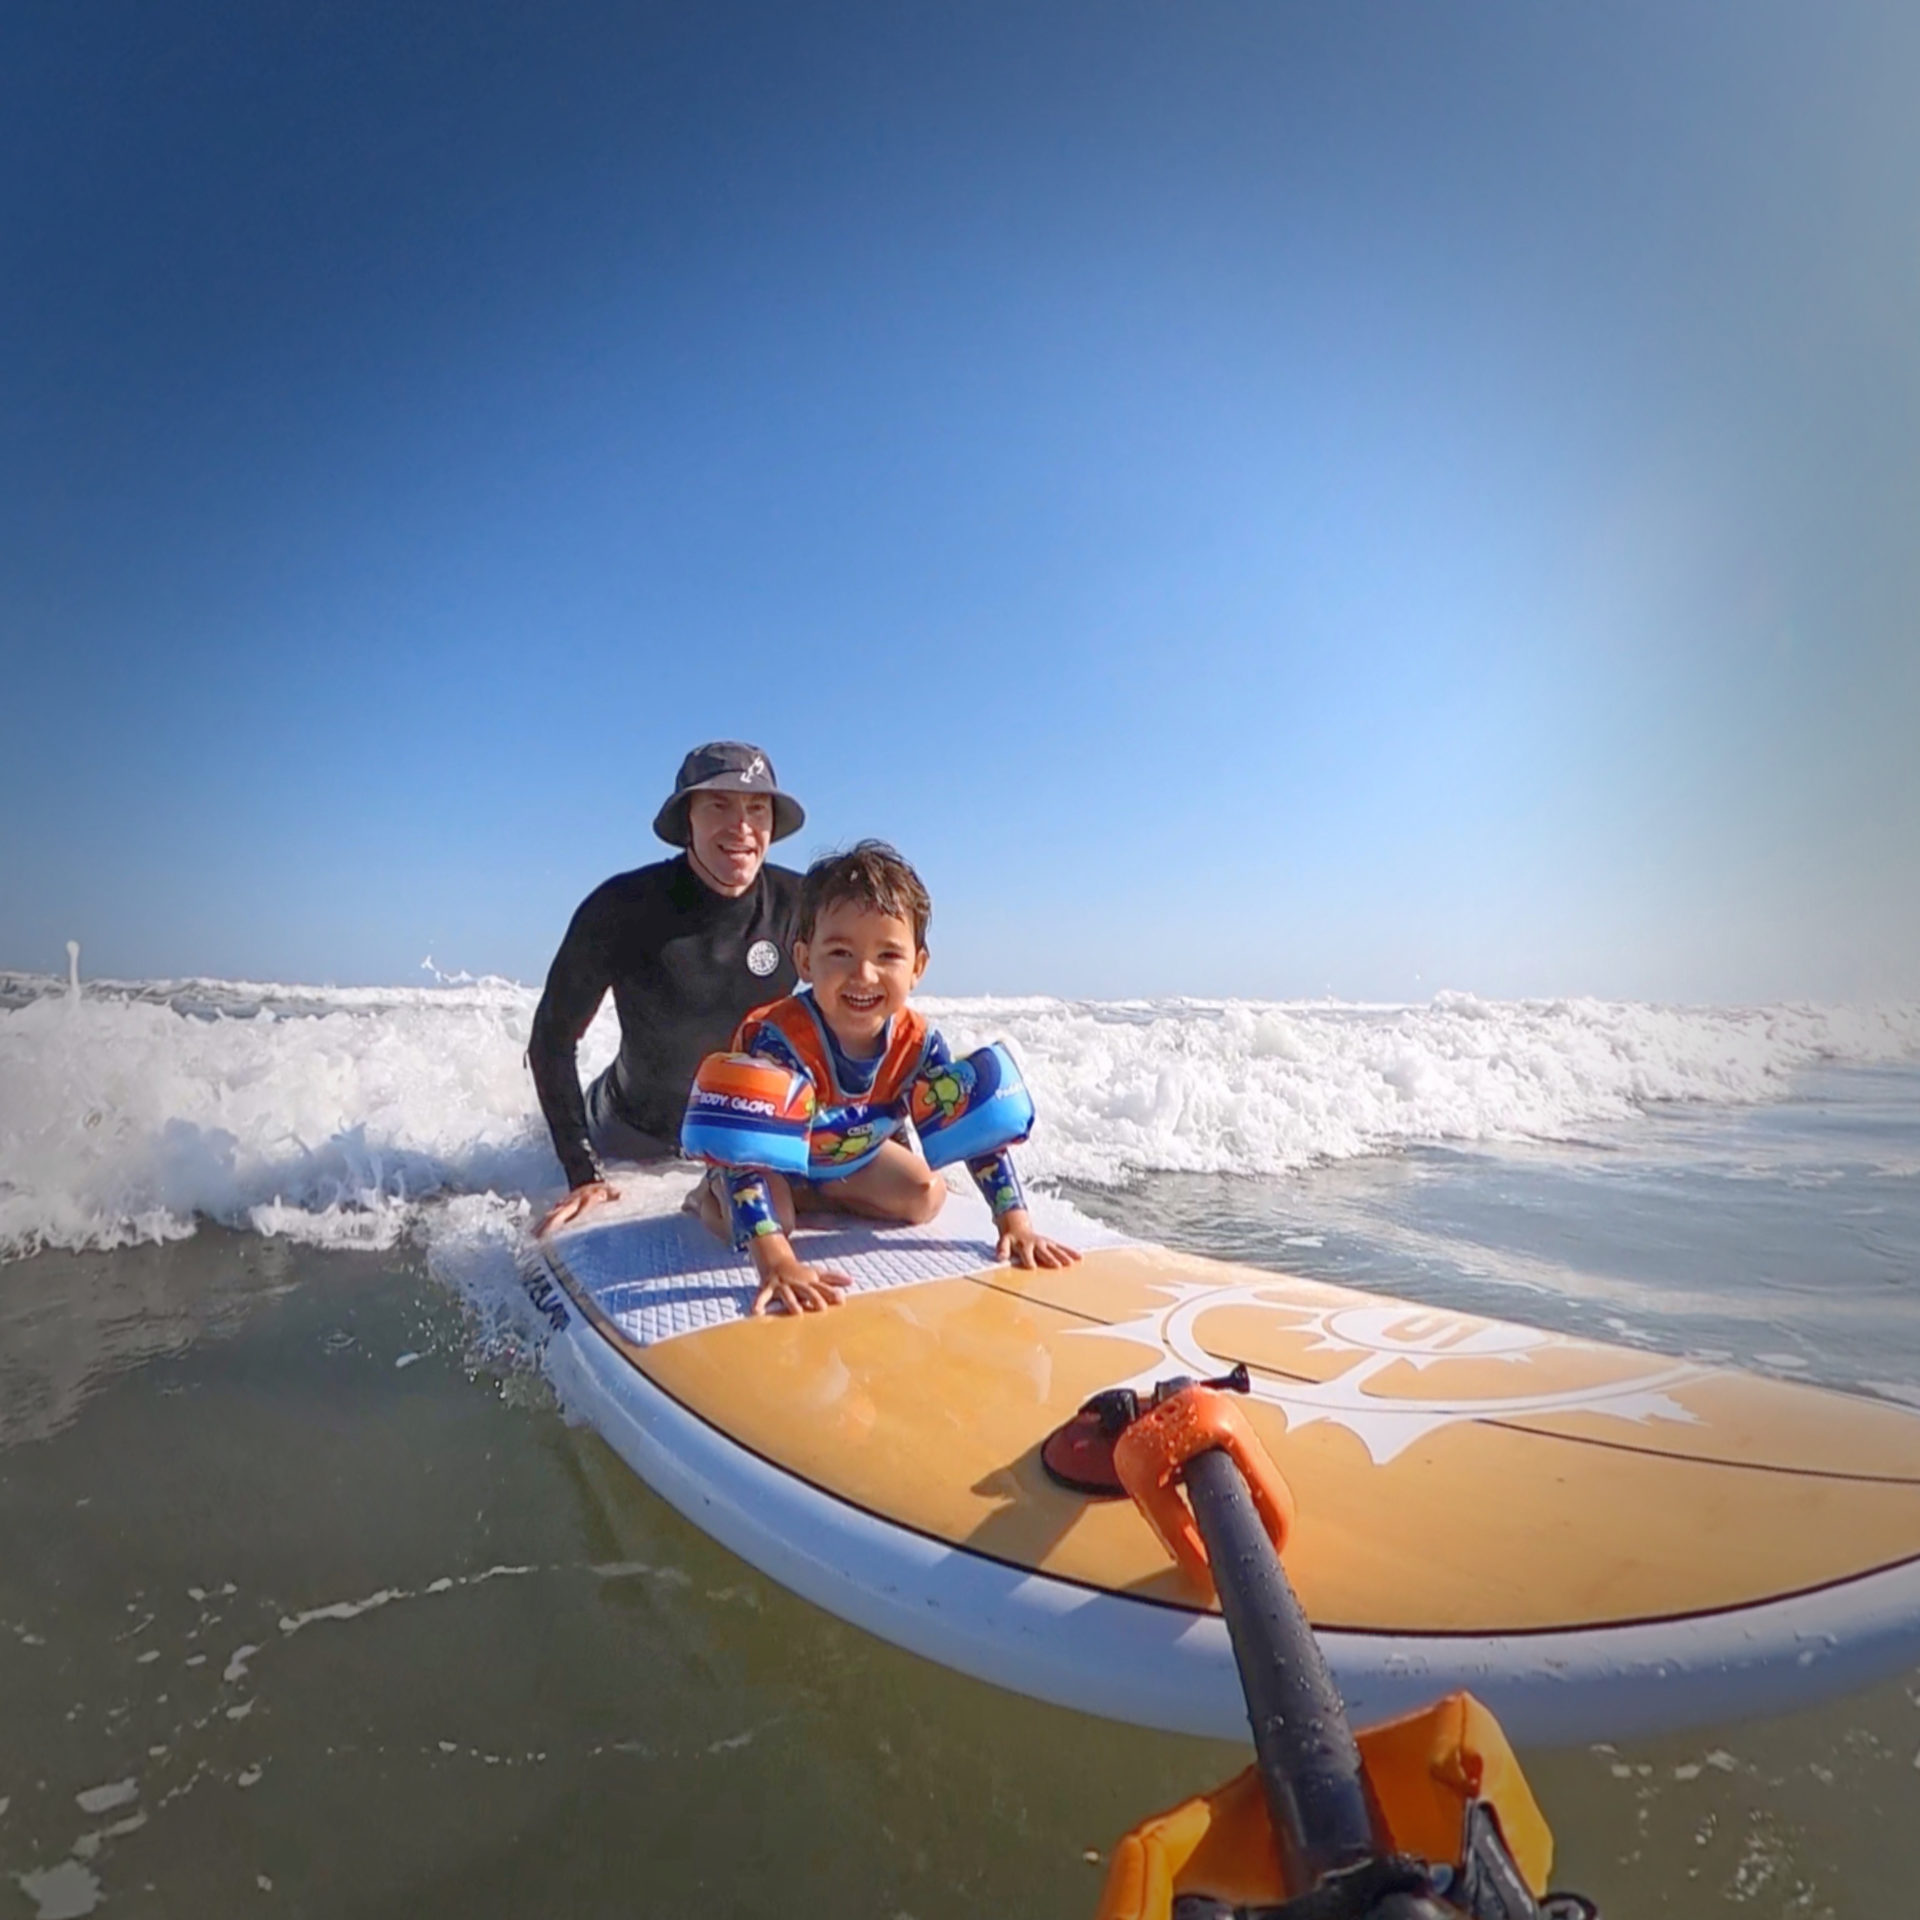 Rohan surfing with son